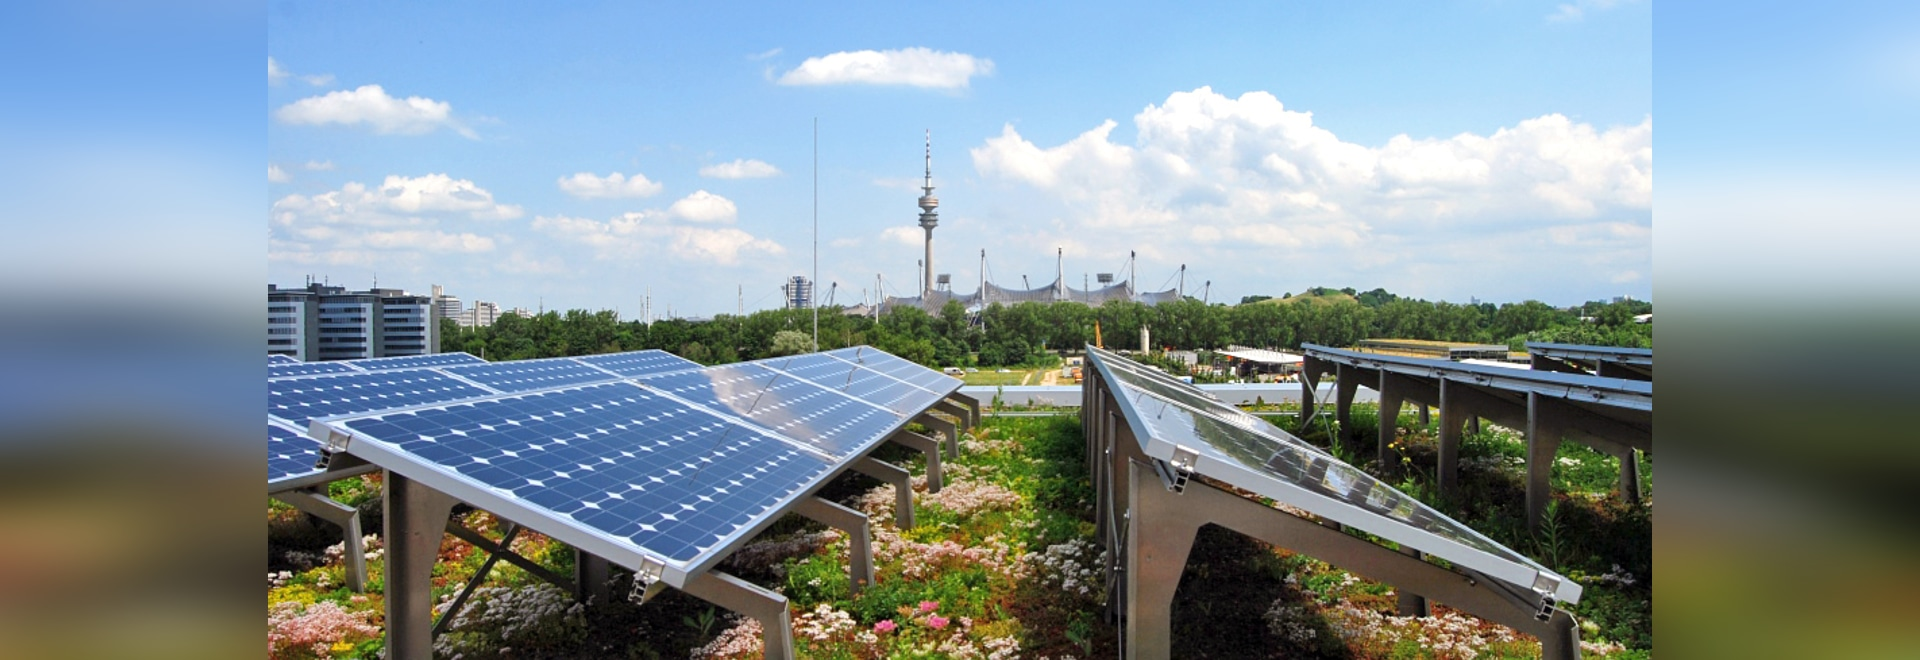 The roof vegetation provides for a cooler ambient temperature and, as a result, for a greater yield from the PV system.